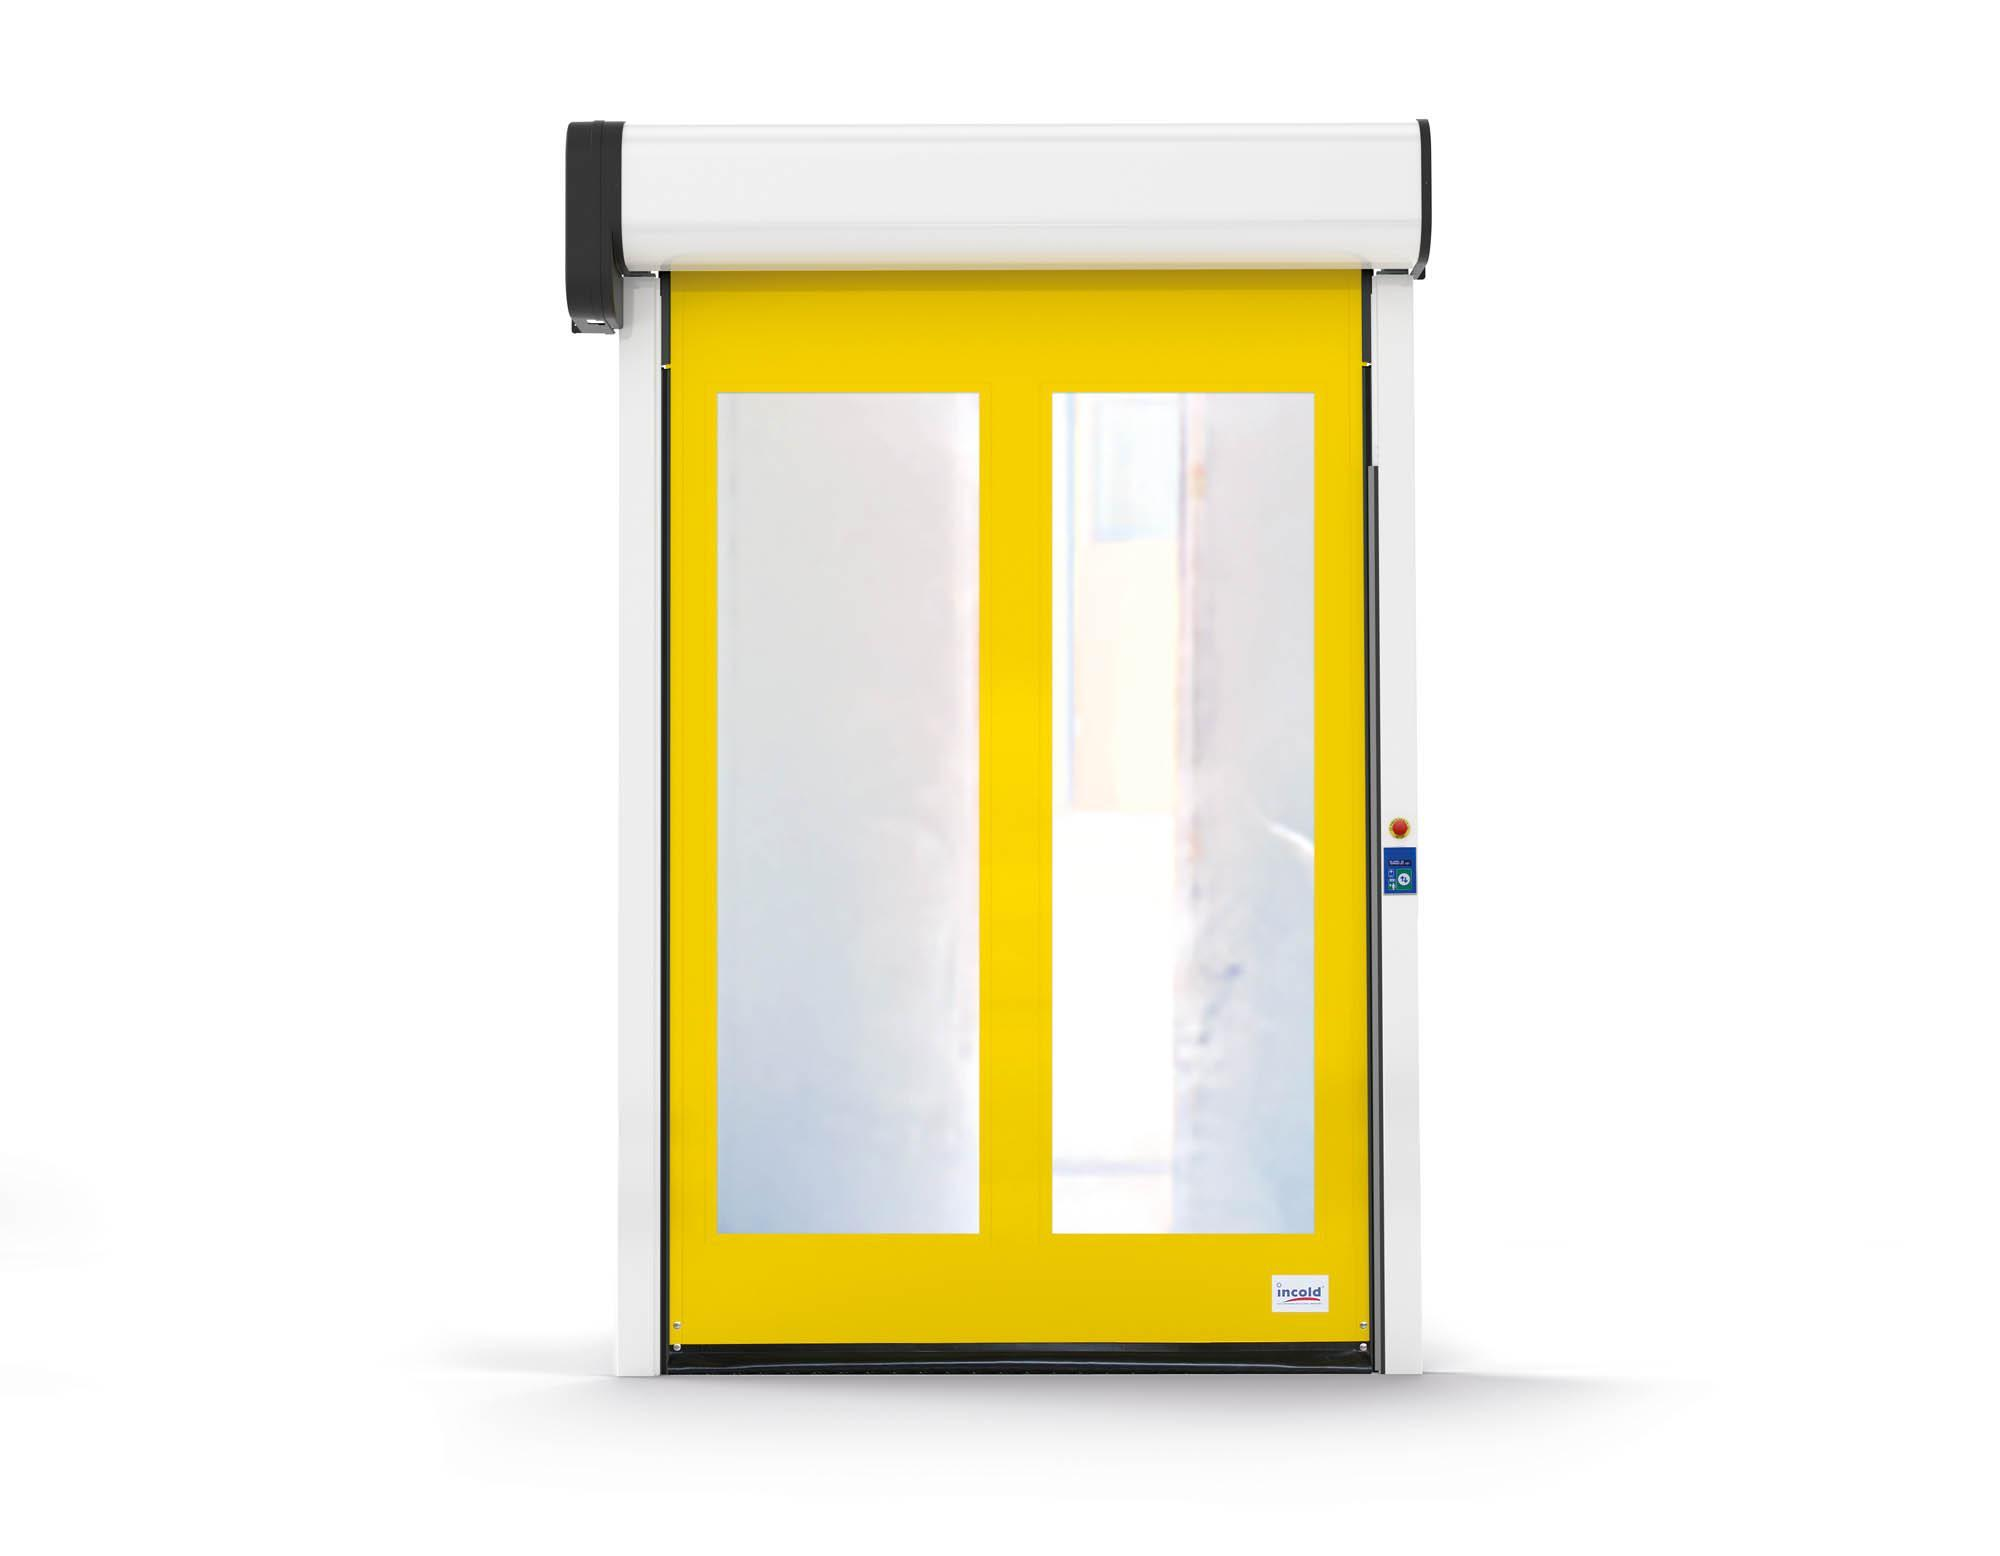 Door, usable in indoor environments, allows high visibility in transit areas.